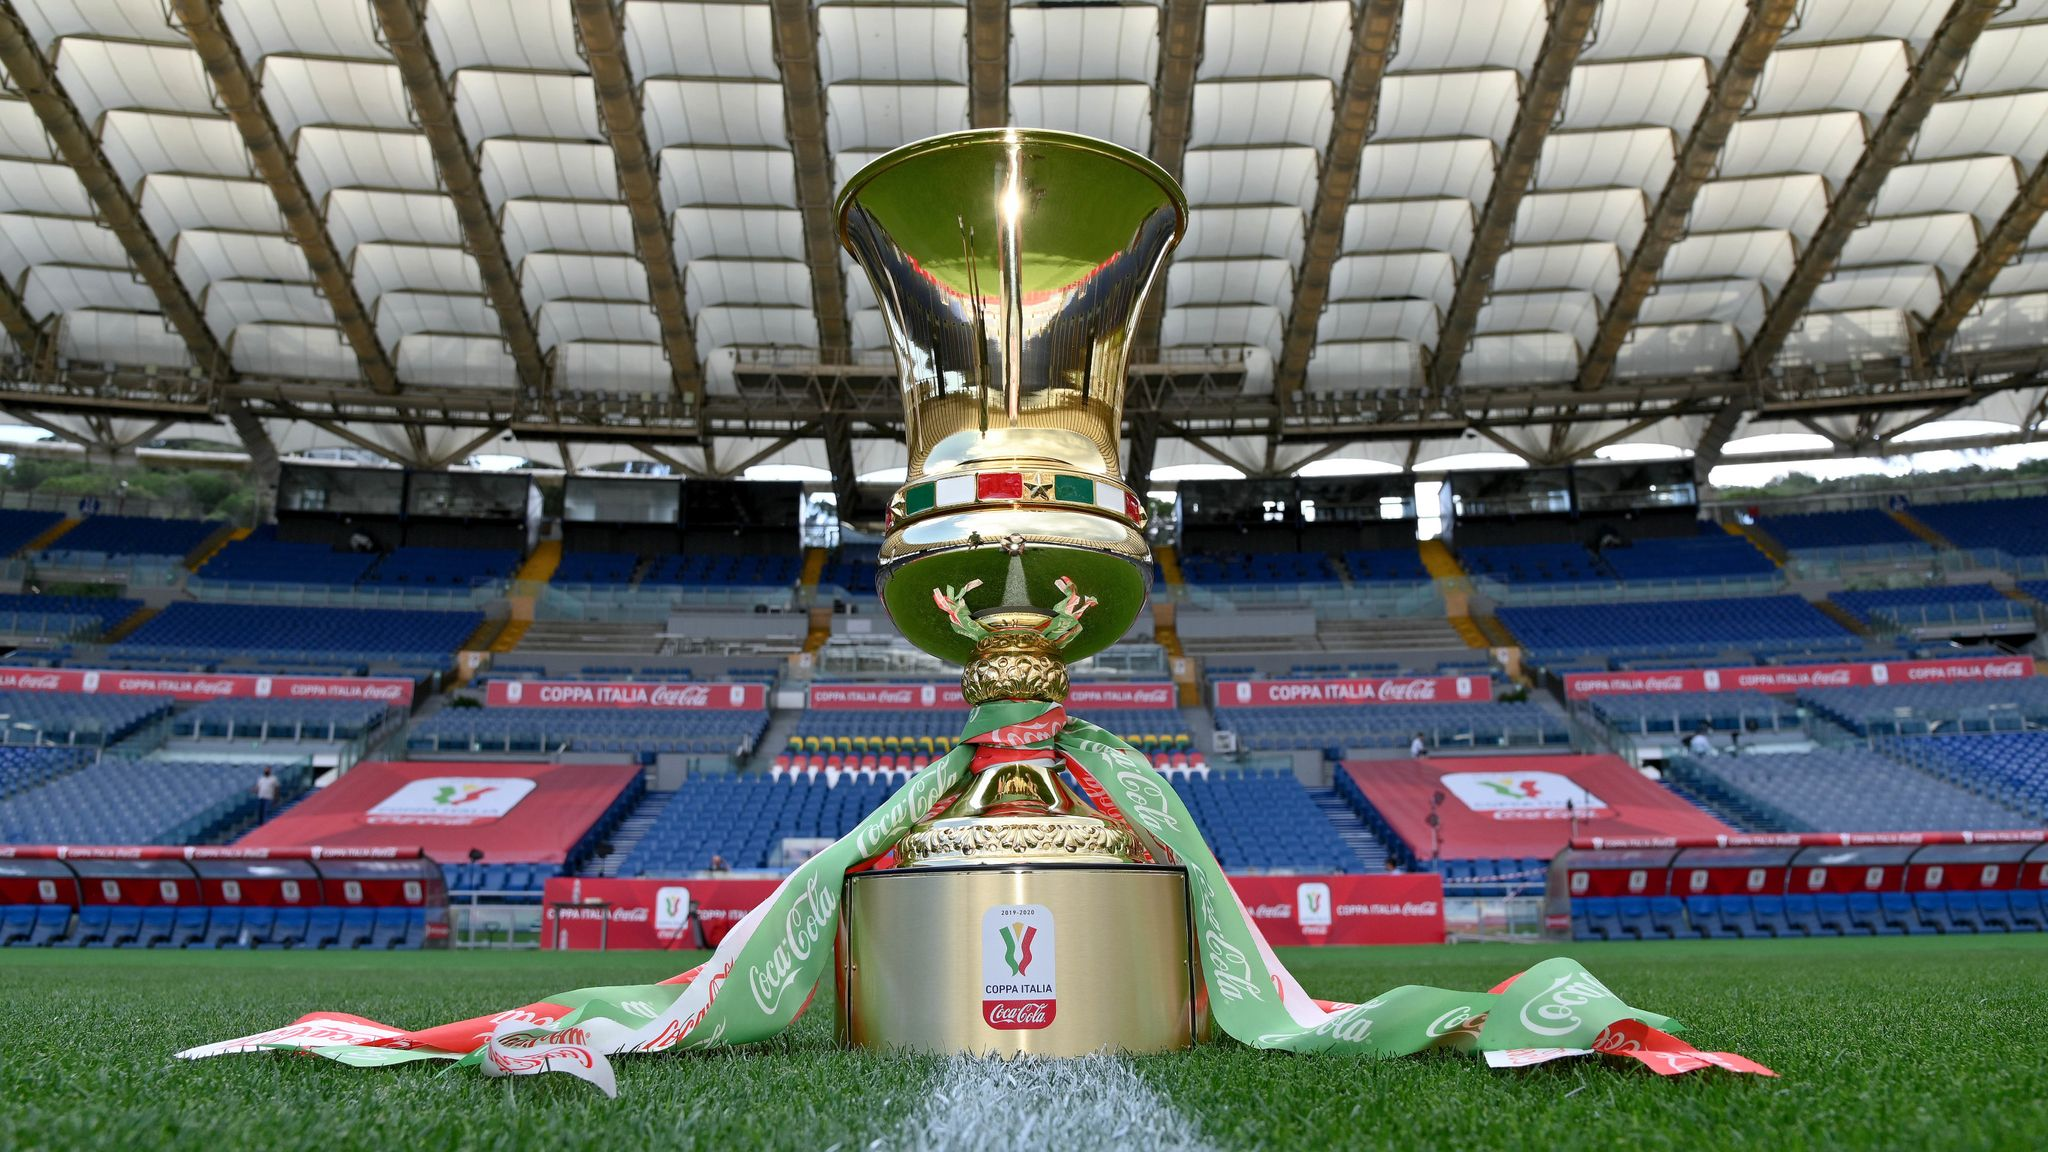 Coppa Italia final: Napoli and Juventus face self-service medal ceremony |  Football News